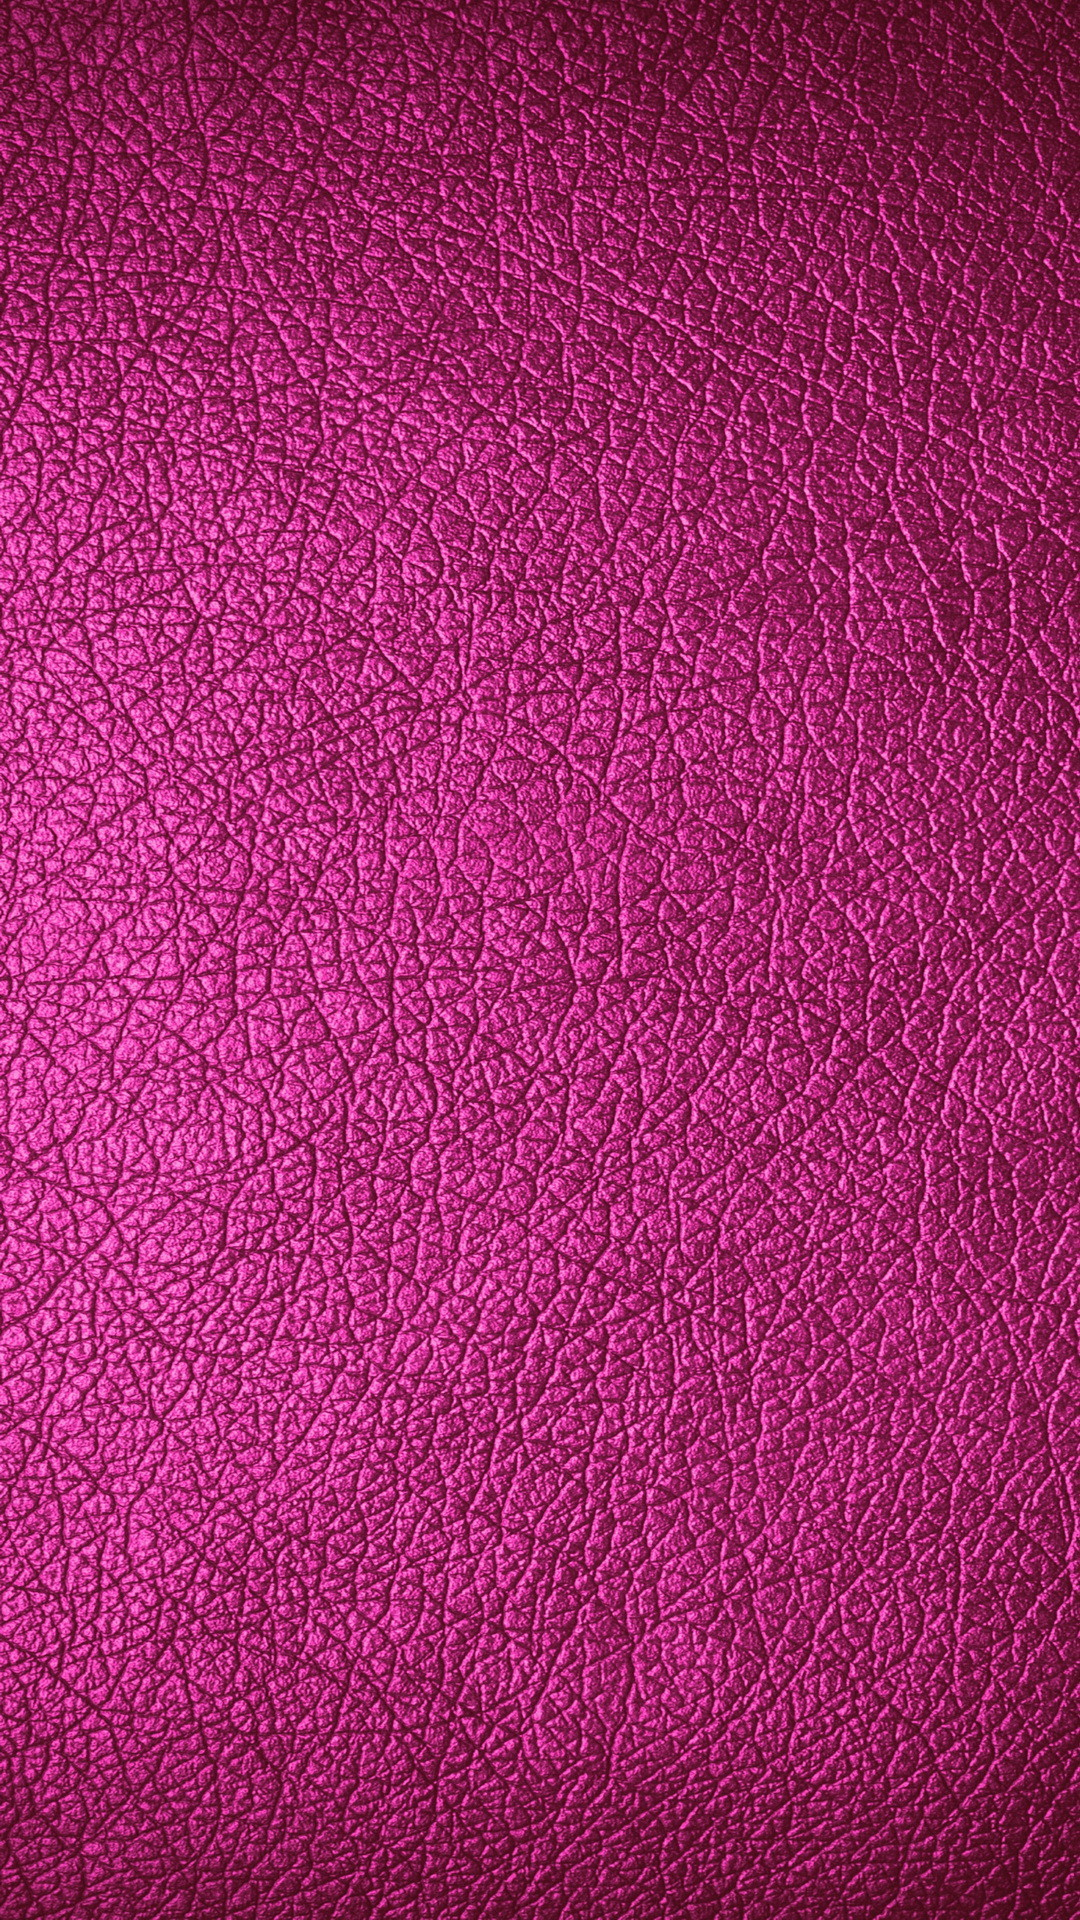 Fabric Leather HD Mobile Wallpaper